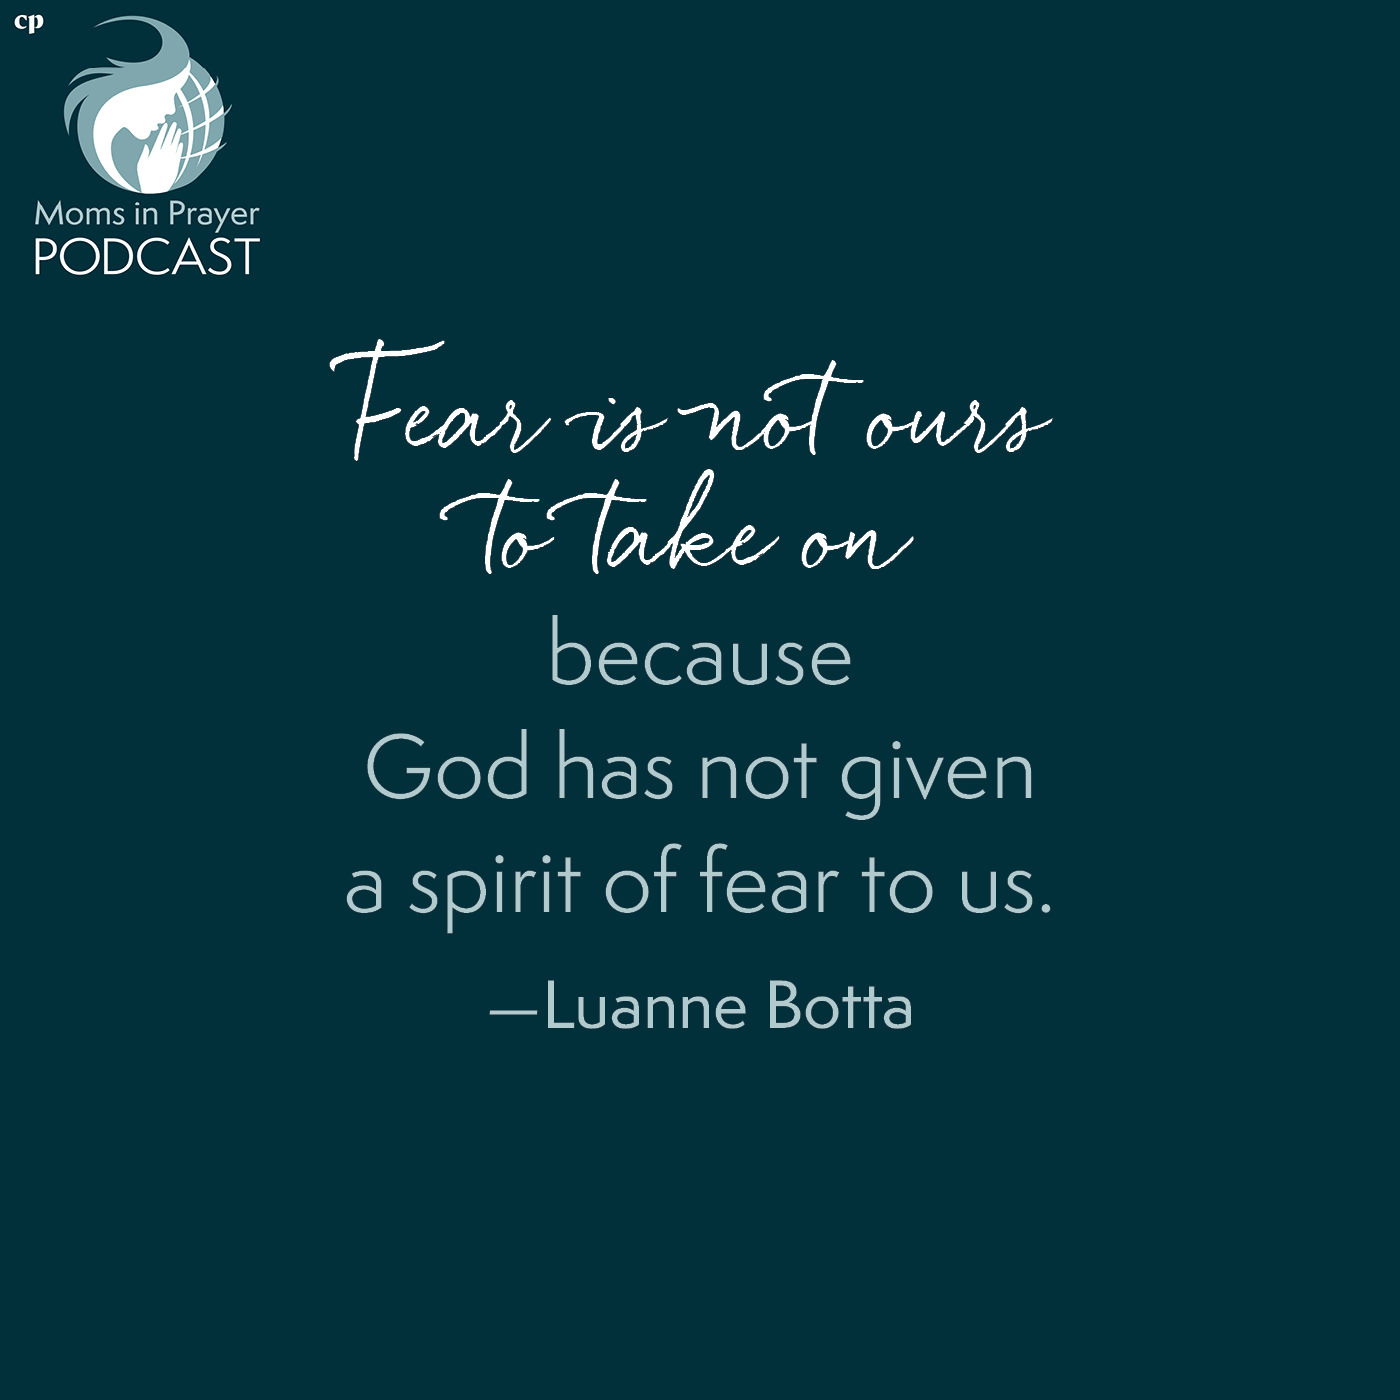 Fear is not ours to take on because God has not given us a spirit of fear